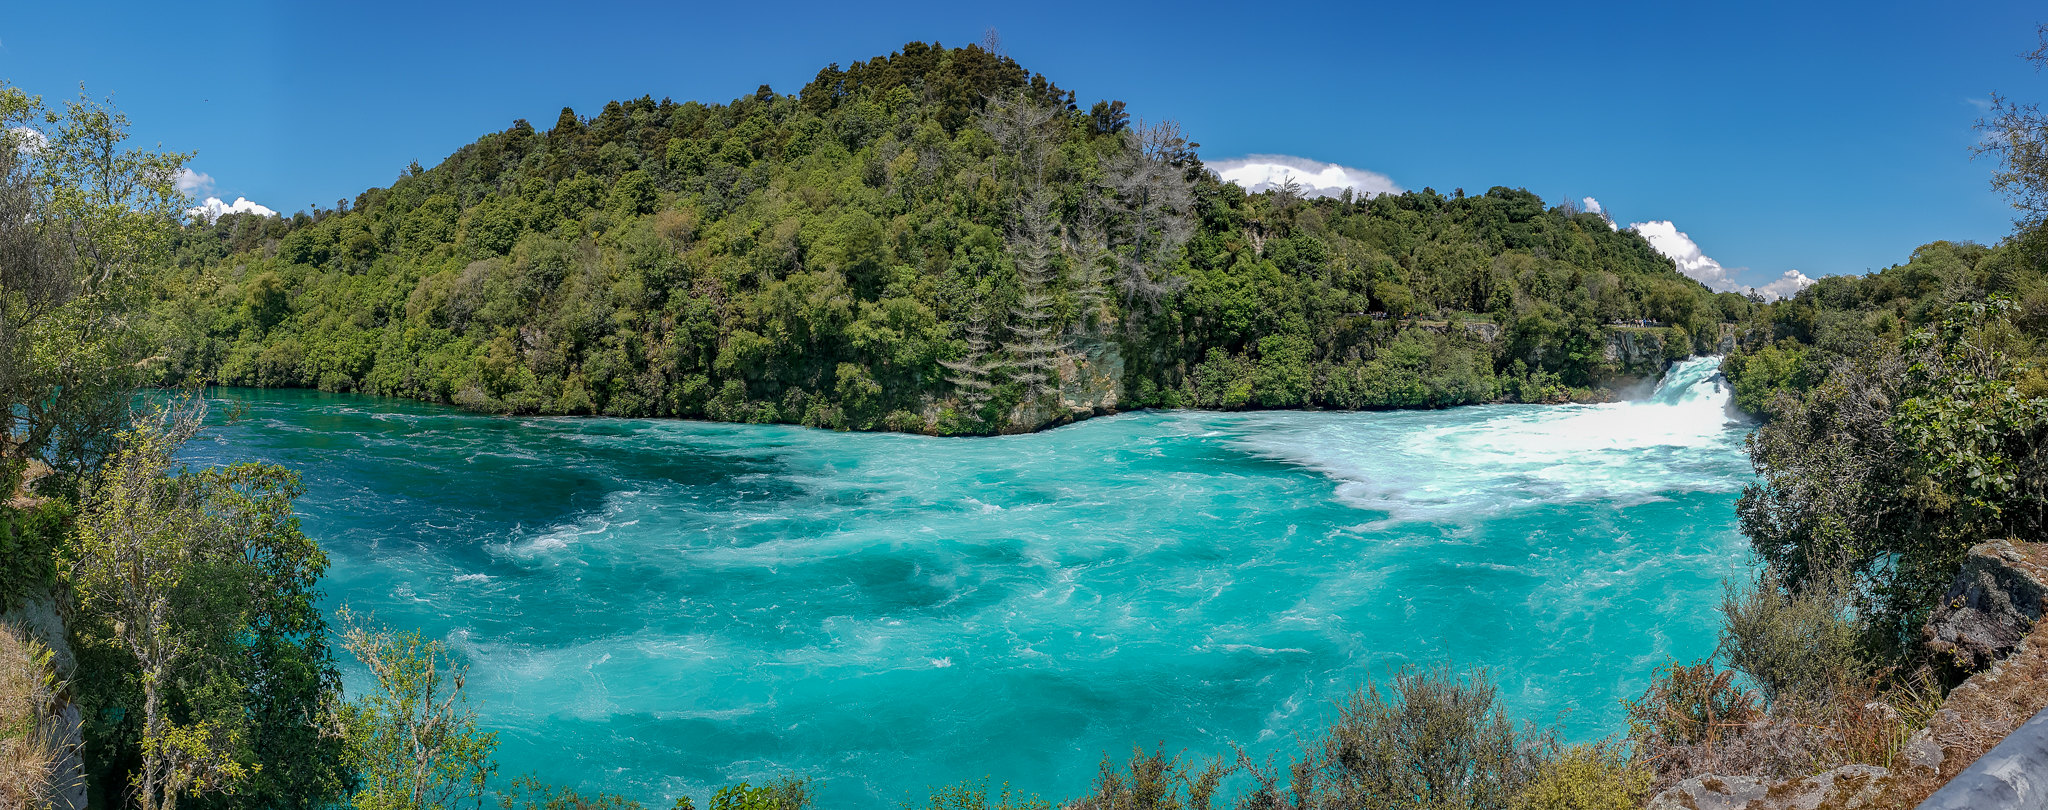 Huka Falls - the most popular natural attraction of New Zealand?